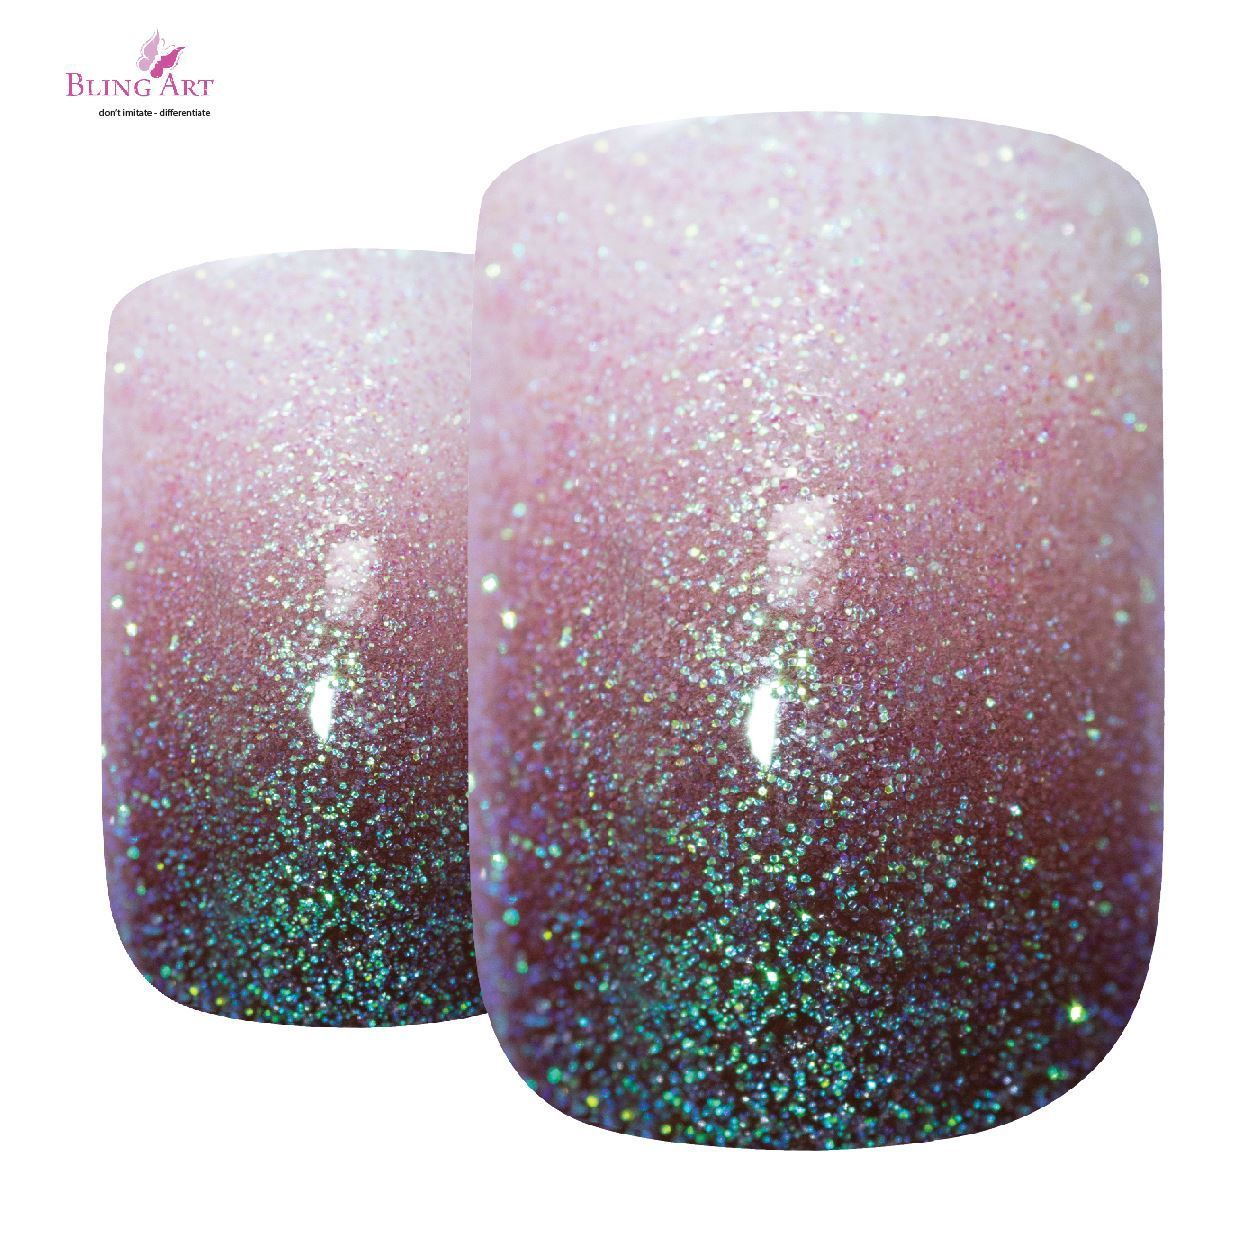 Christmas False Nails Uk: False Nails By Bling Art Red Brown Gel Ombre French